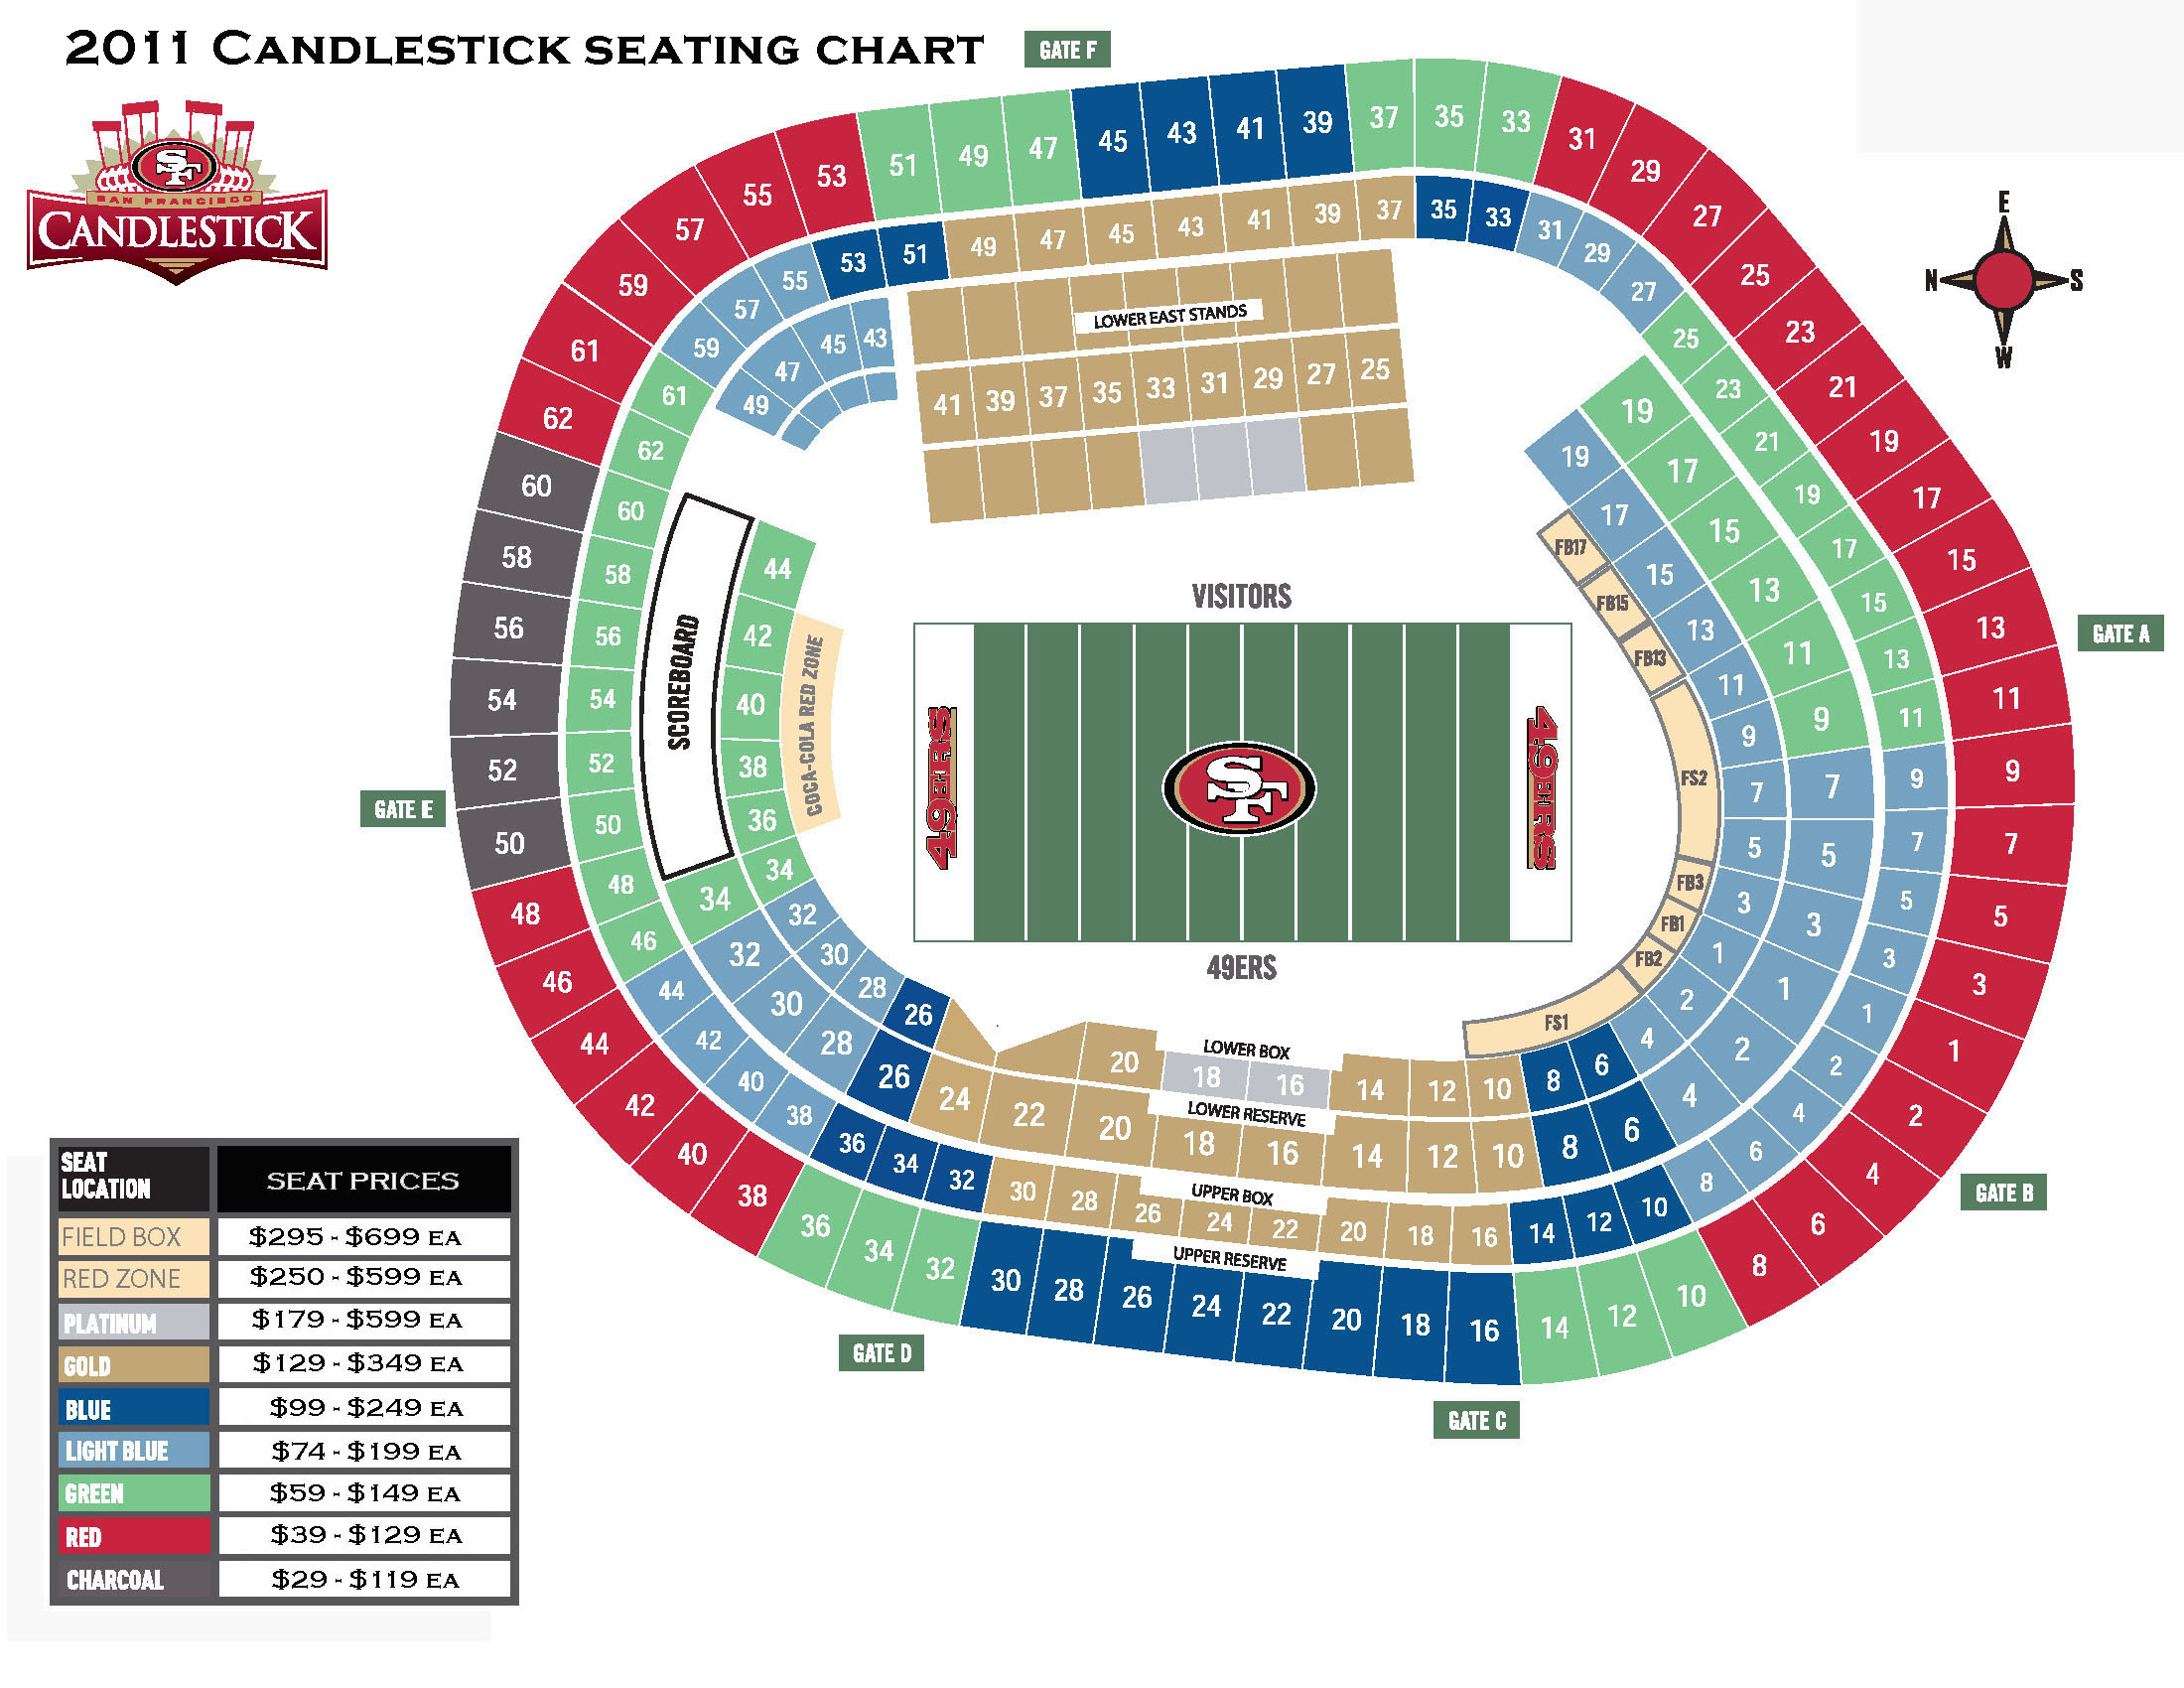 49ers parking passes for main lot